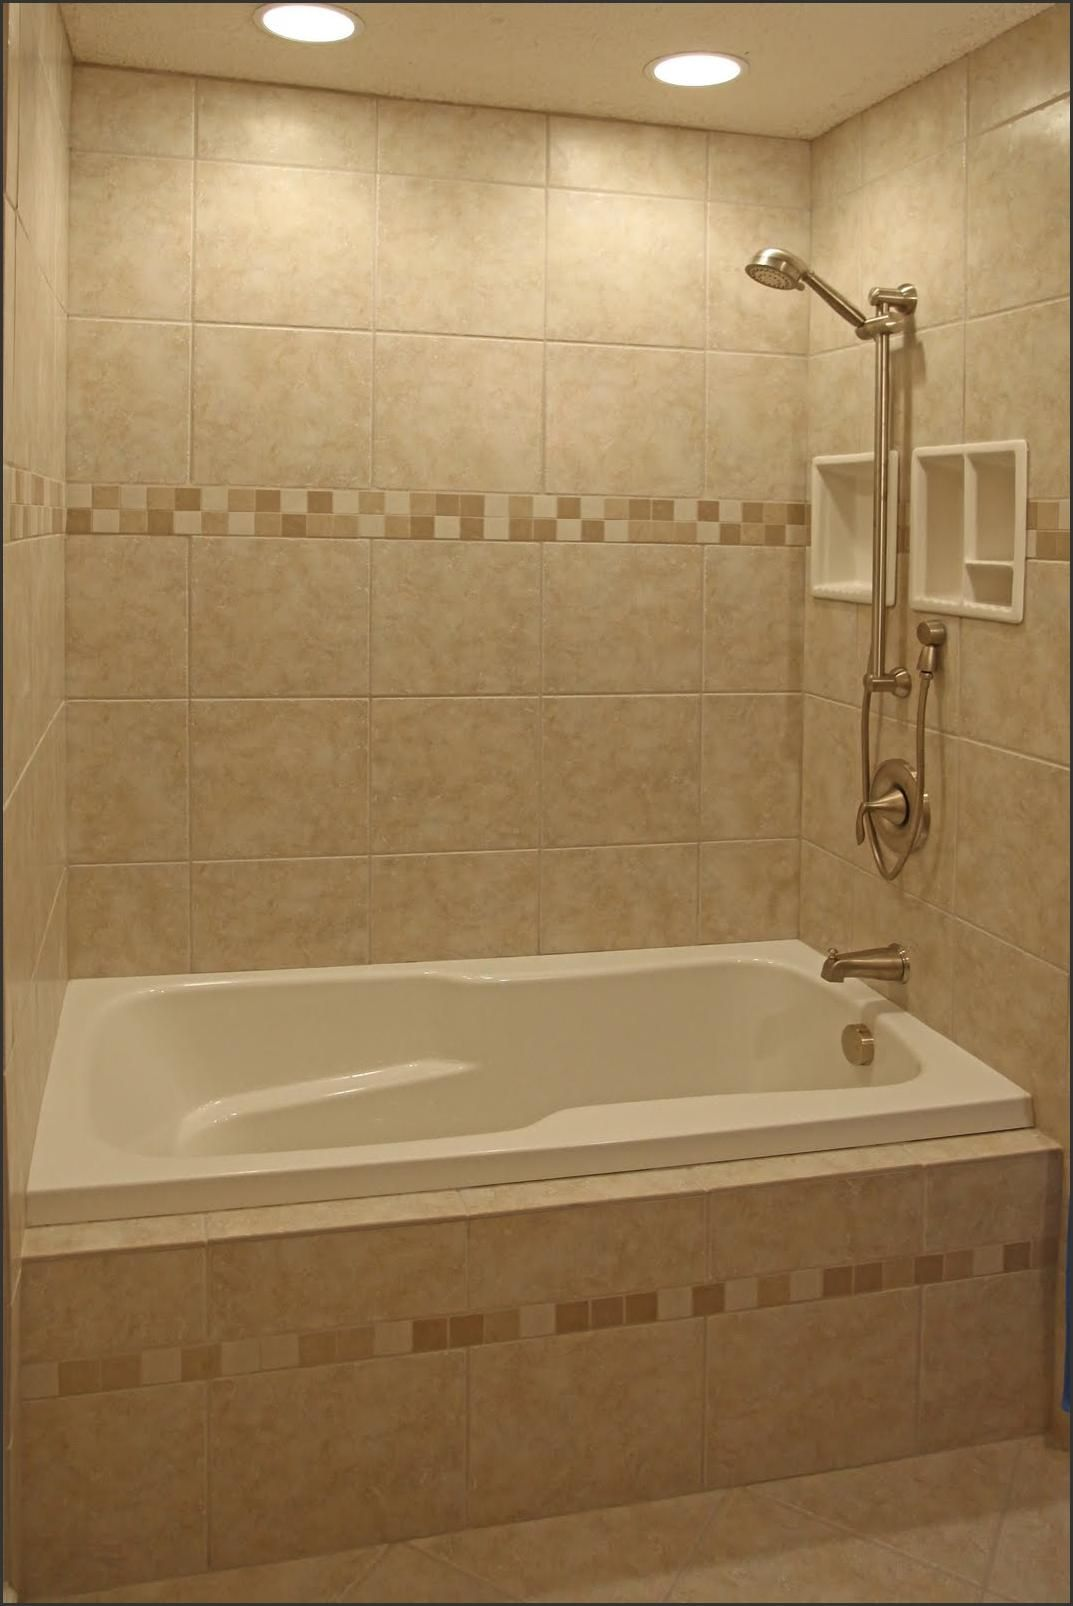 Bathroom Design Tile Small Bathroom Tiles Bathroom Shower